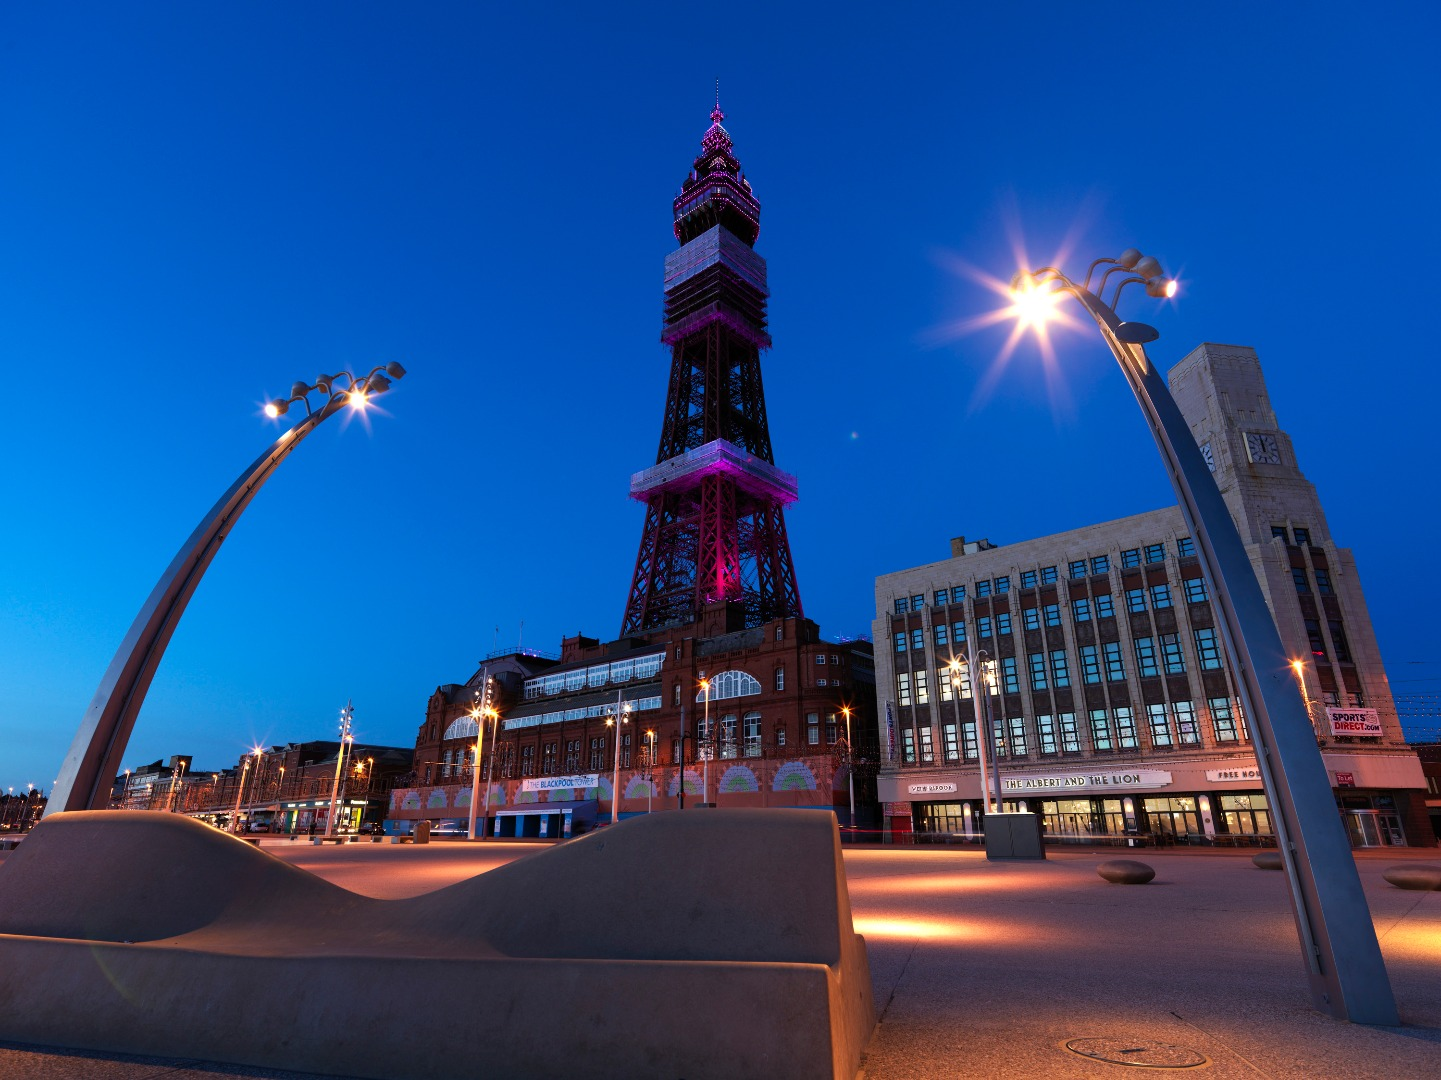 Blackpool Tower building lit up at night when LightPool started